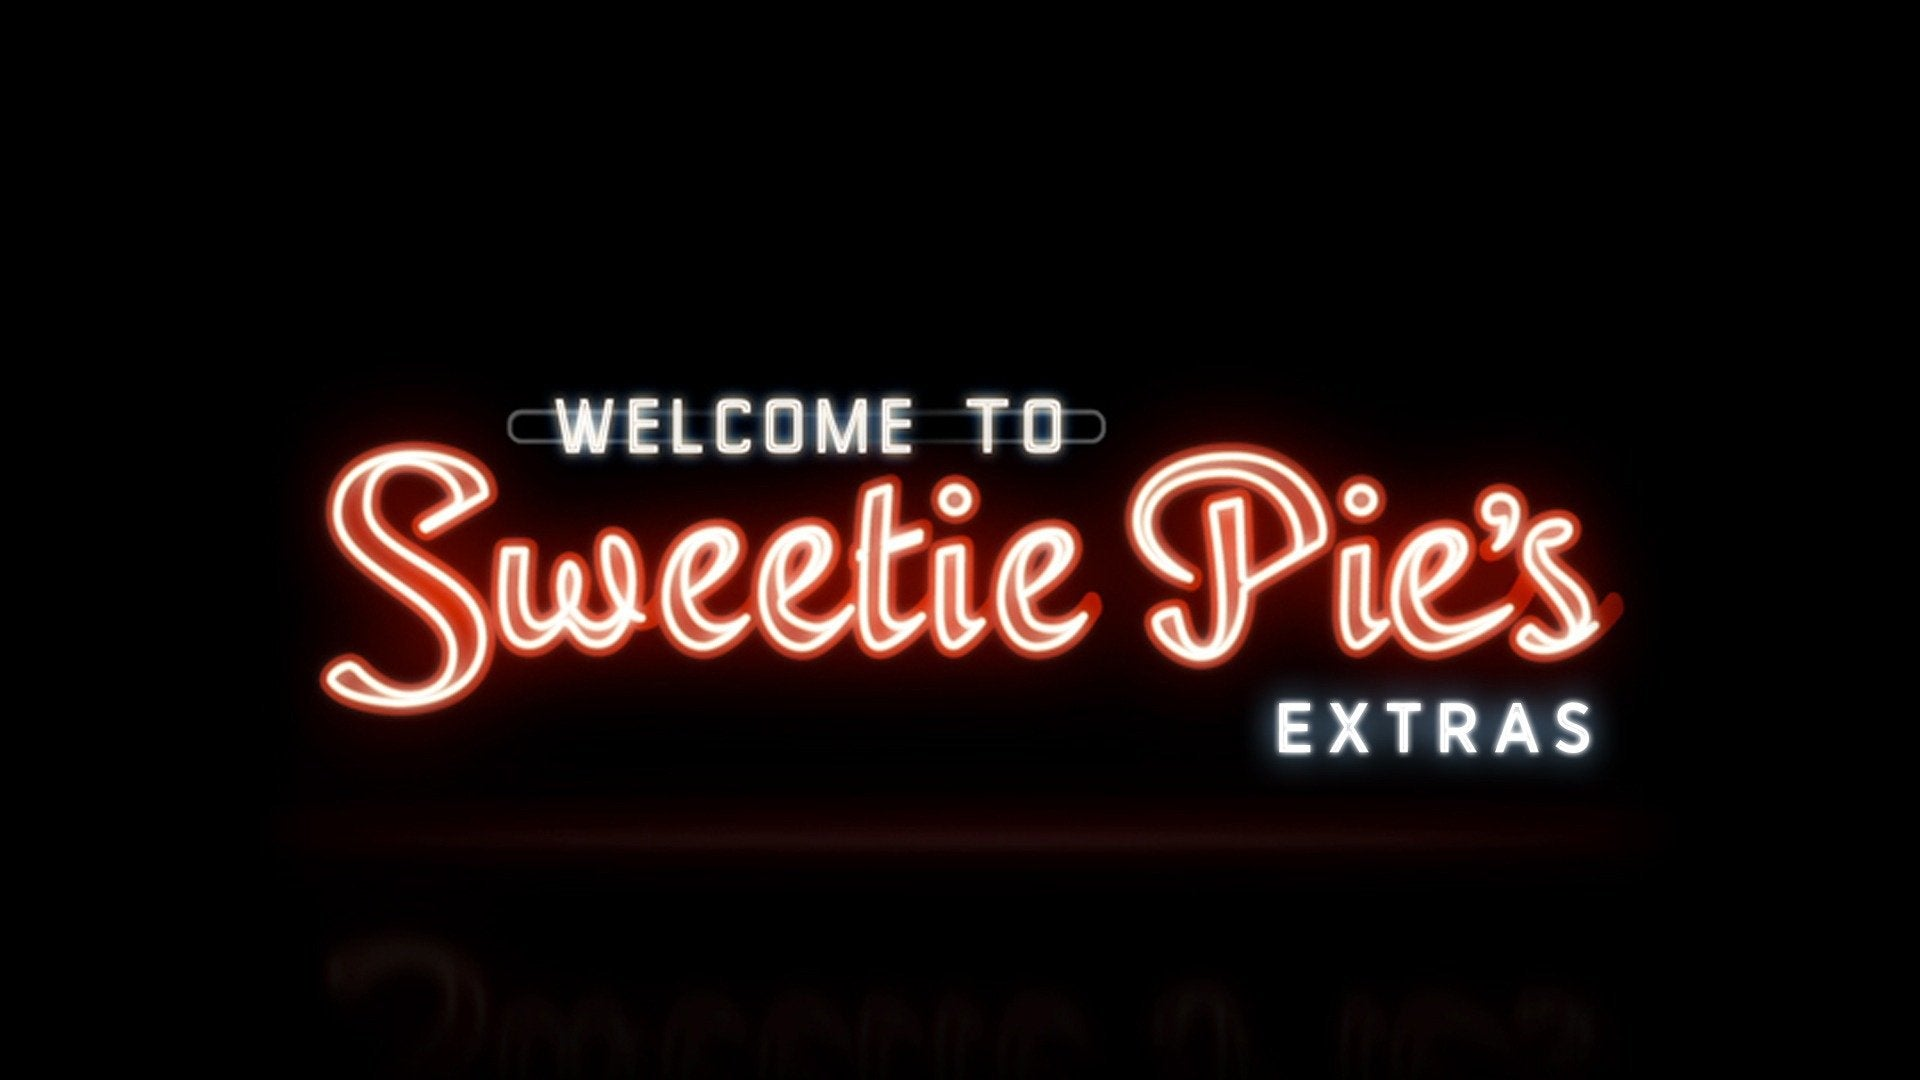 Welcome to Sweetie Pie's: Extras